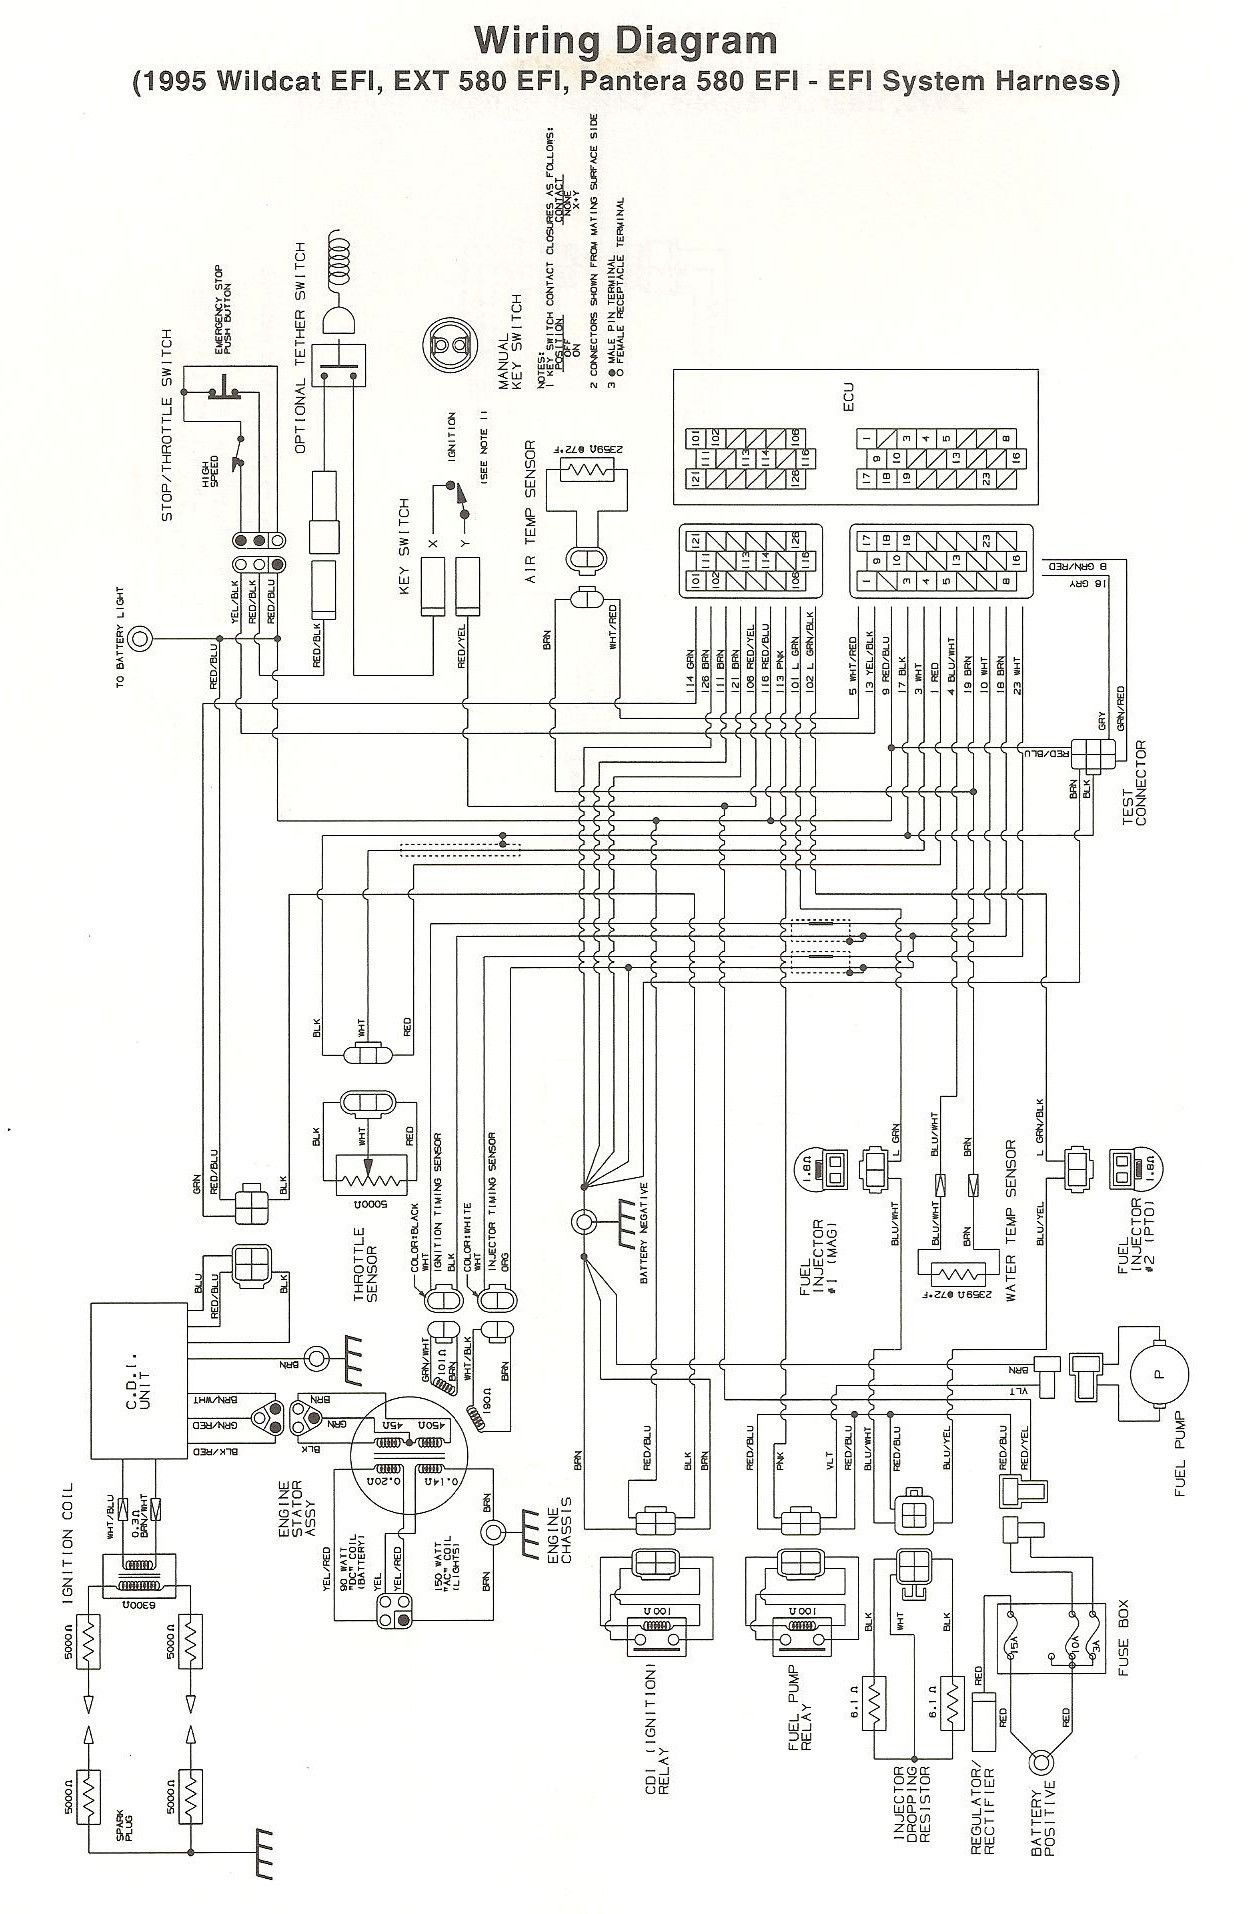 rhino 660 wiring diagram yamaha grizzly 660 wiring diagram | free wiring diagram 2006 rhino 660 wiring diagram